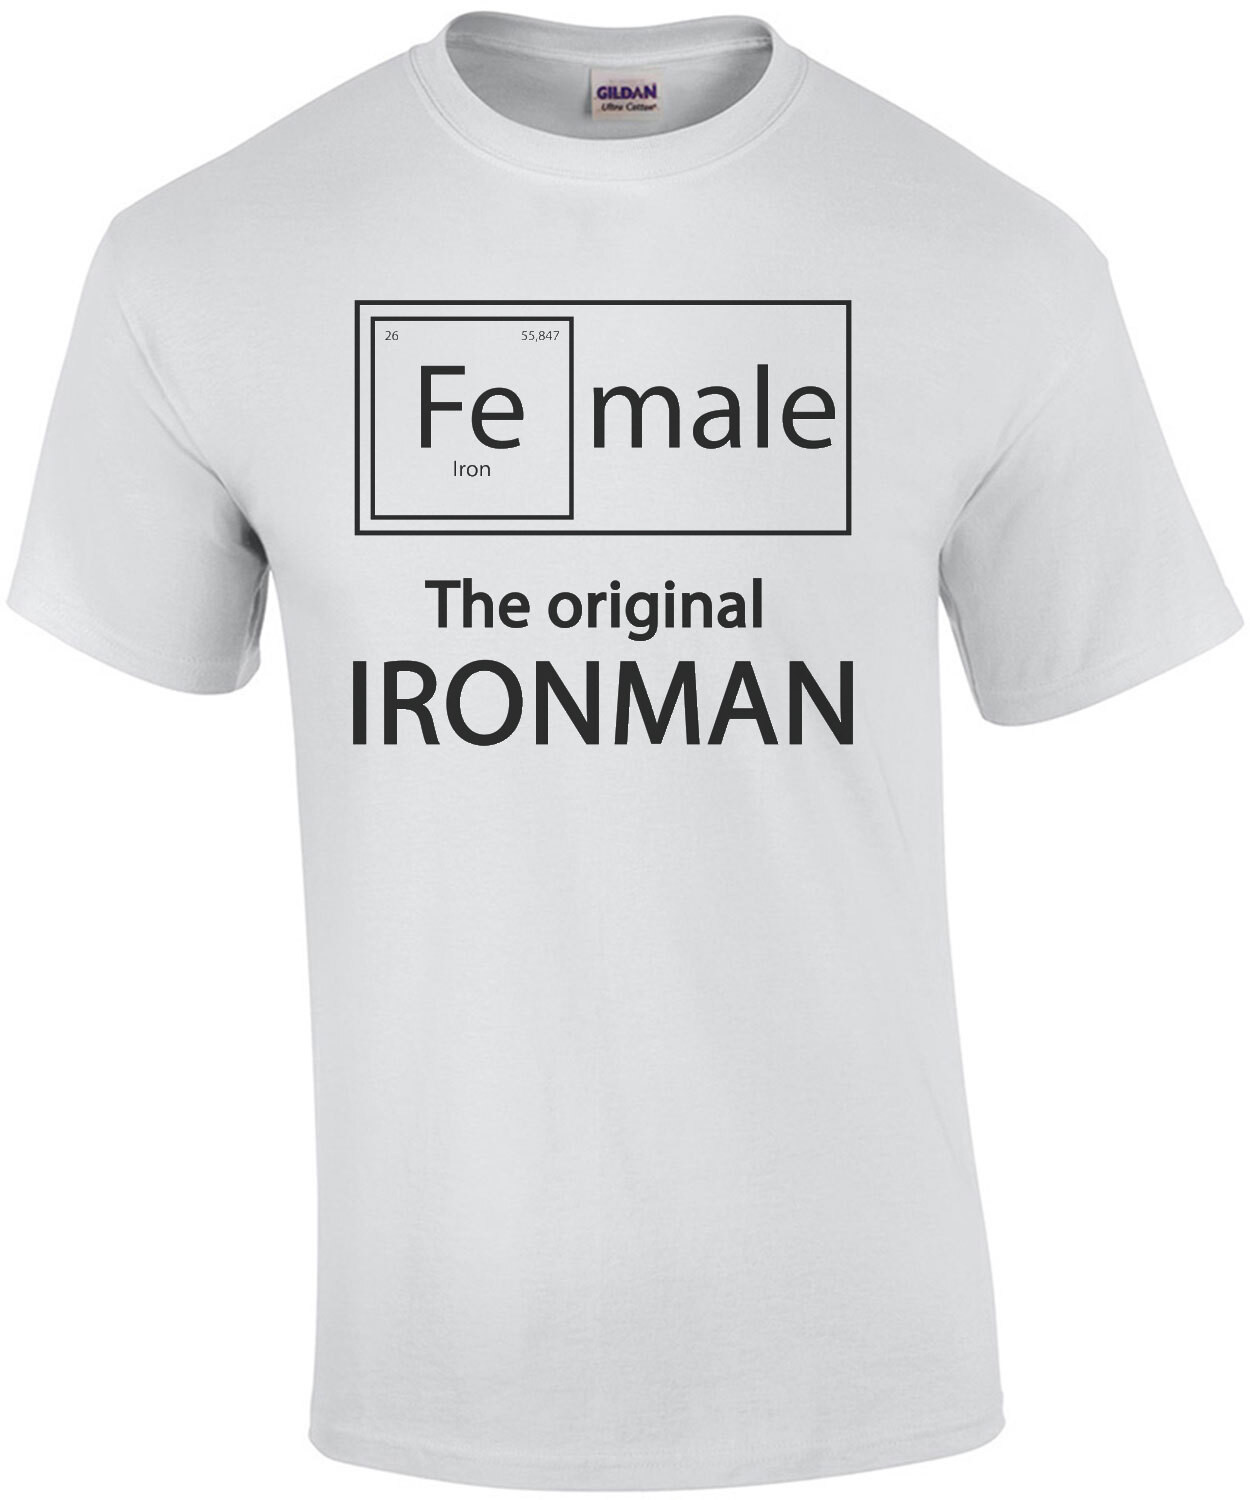 Fe Male - The original Ironman - funny t-shirt